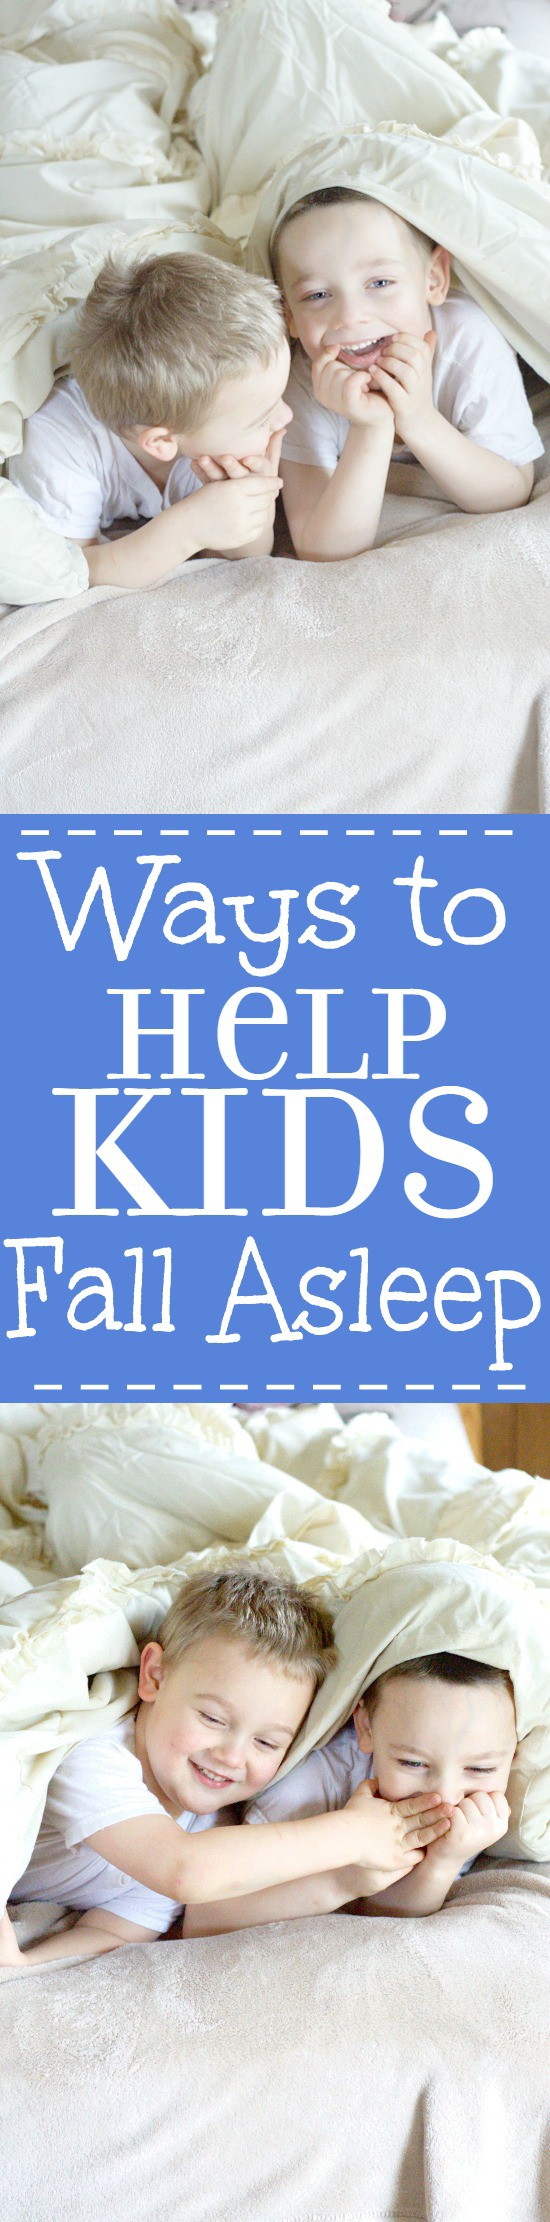 Ways To Help Kids Fall Asleep Easier At Night, And Go To Bed Without A